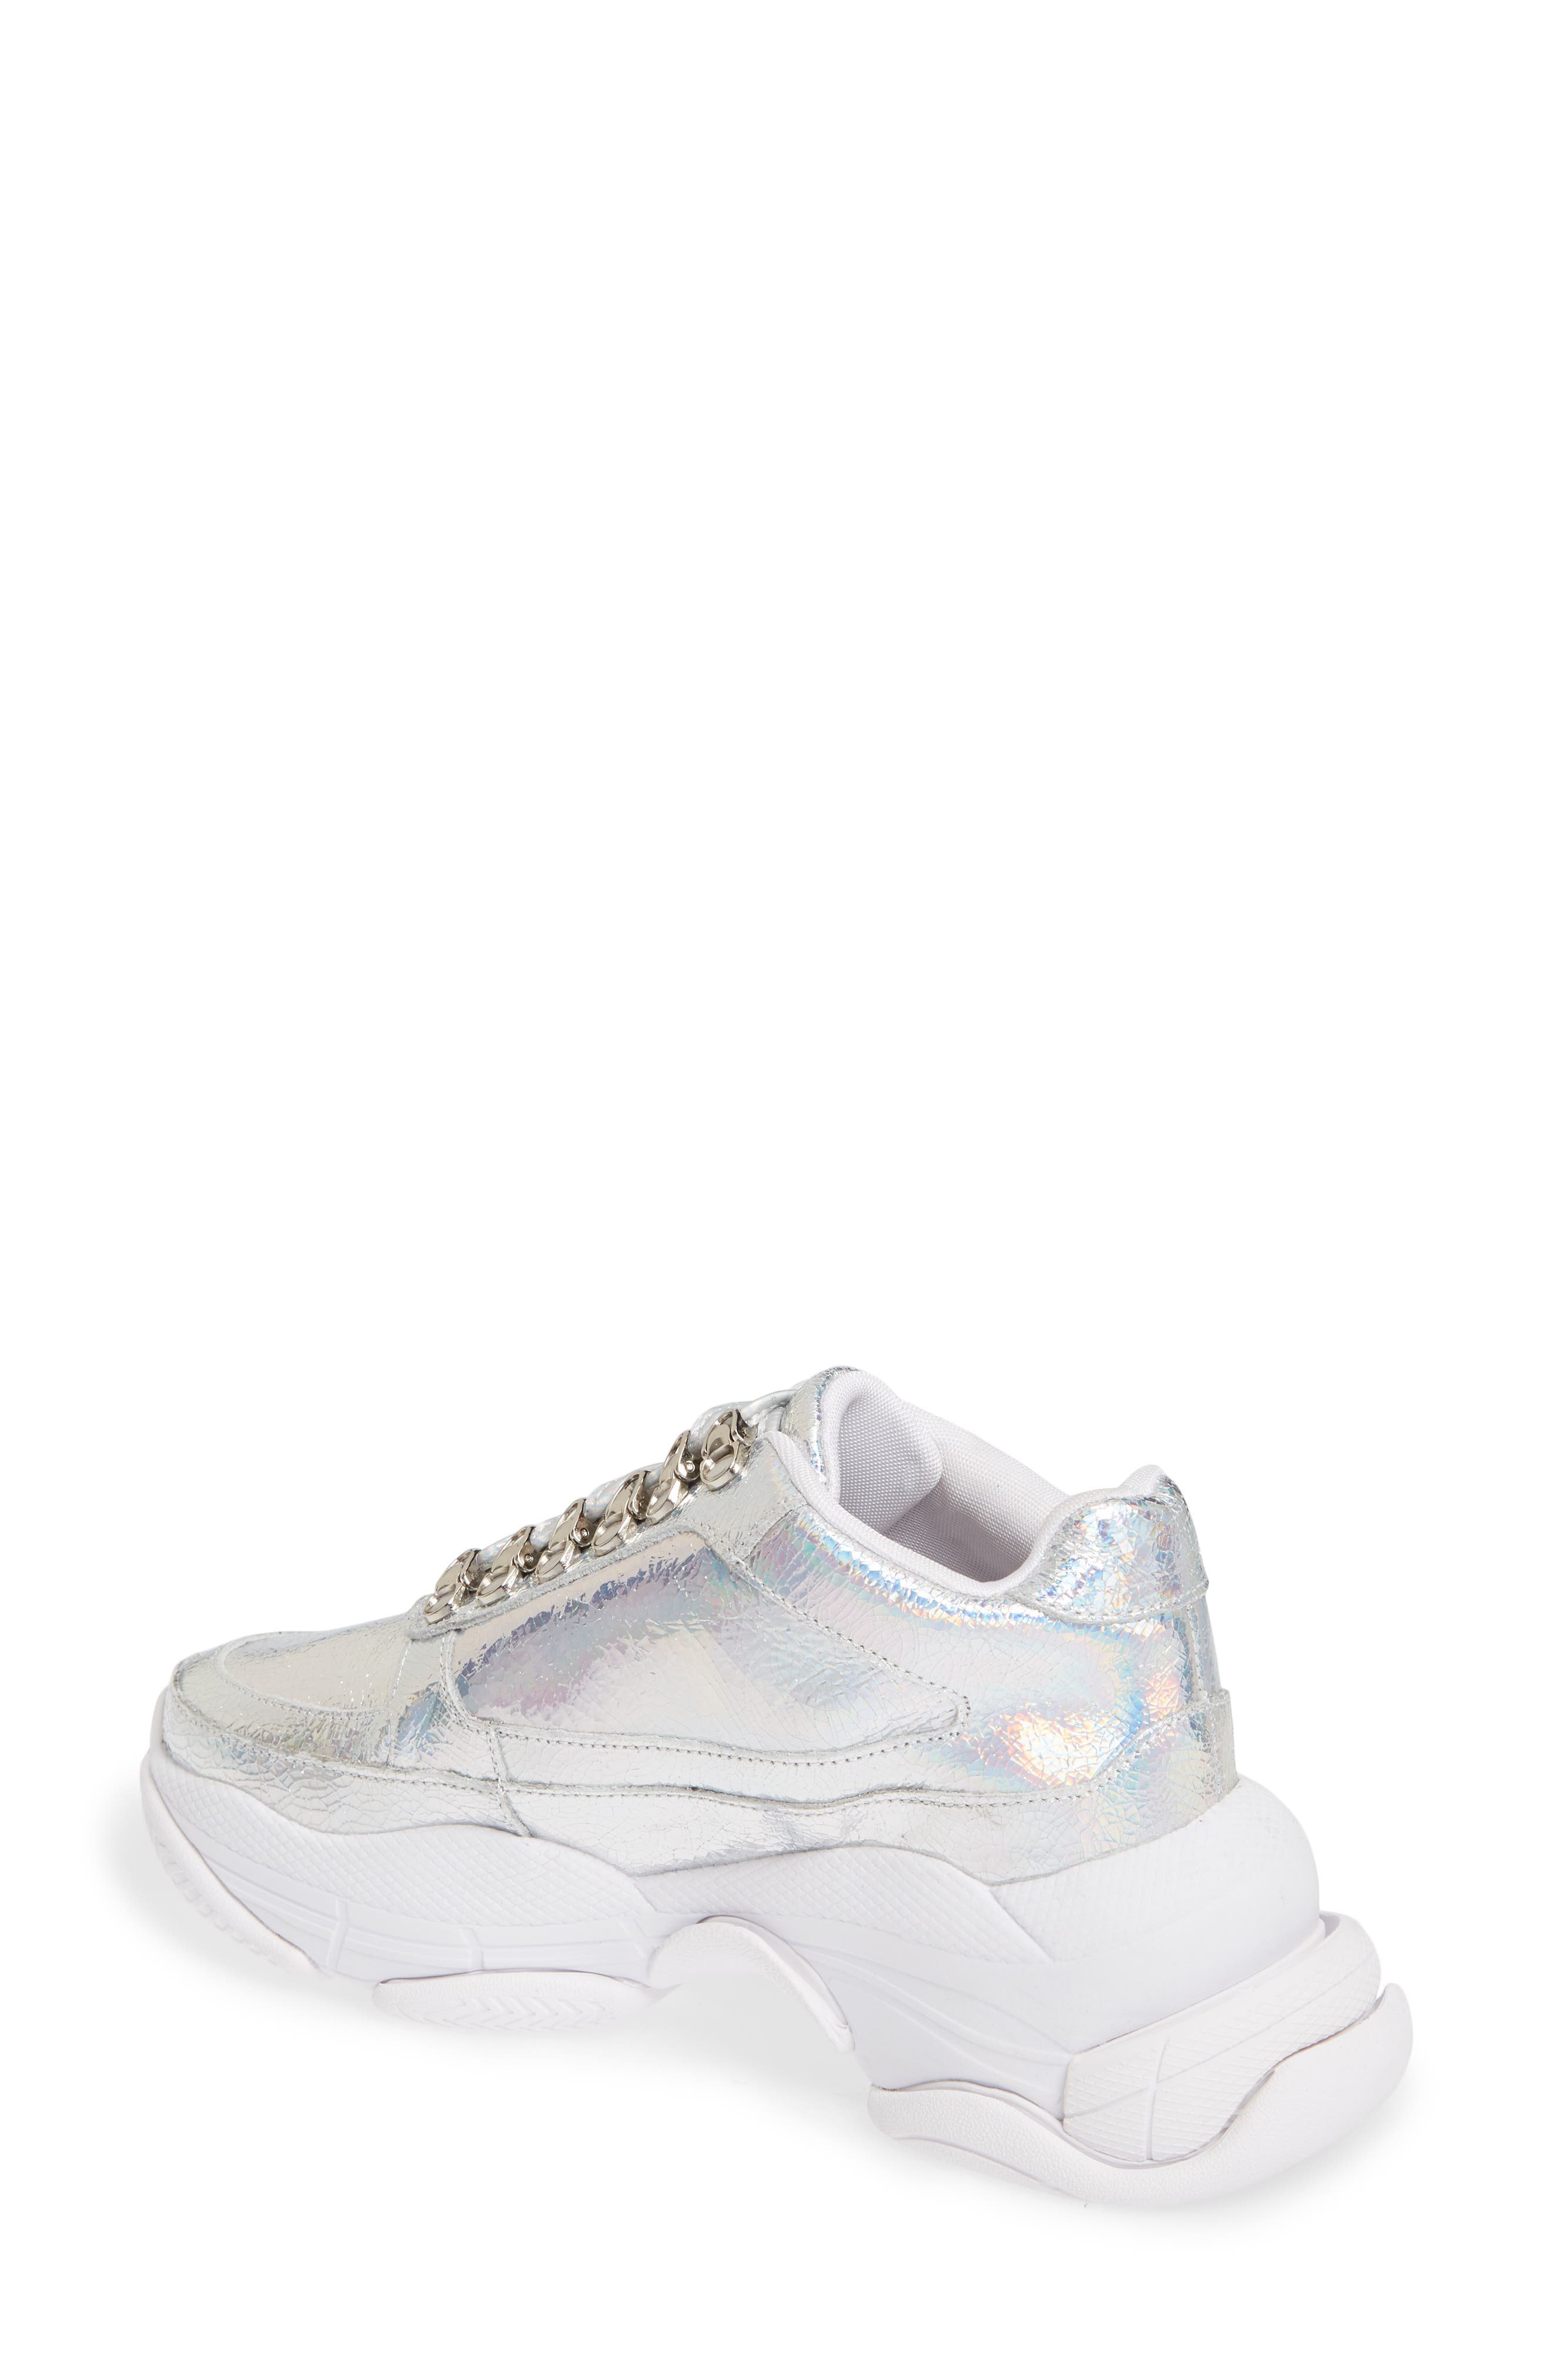 Hotspot Lace-Up Sneaker,                             Alternate thumbnail 2, color,                             SILVER CRINKLE